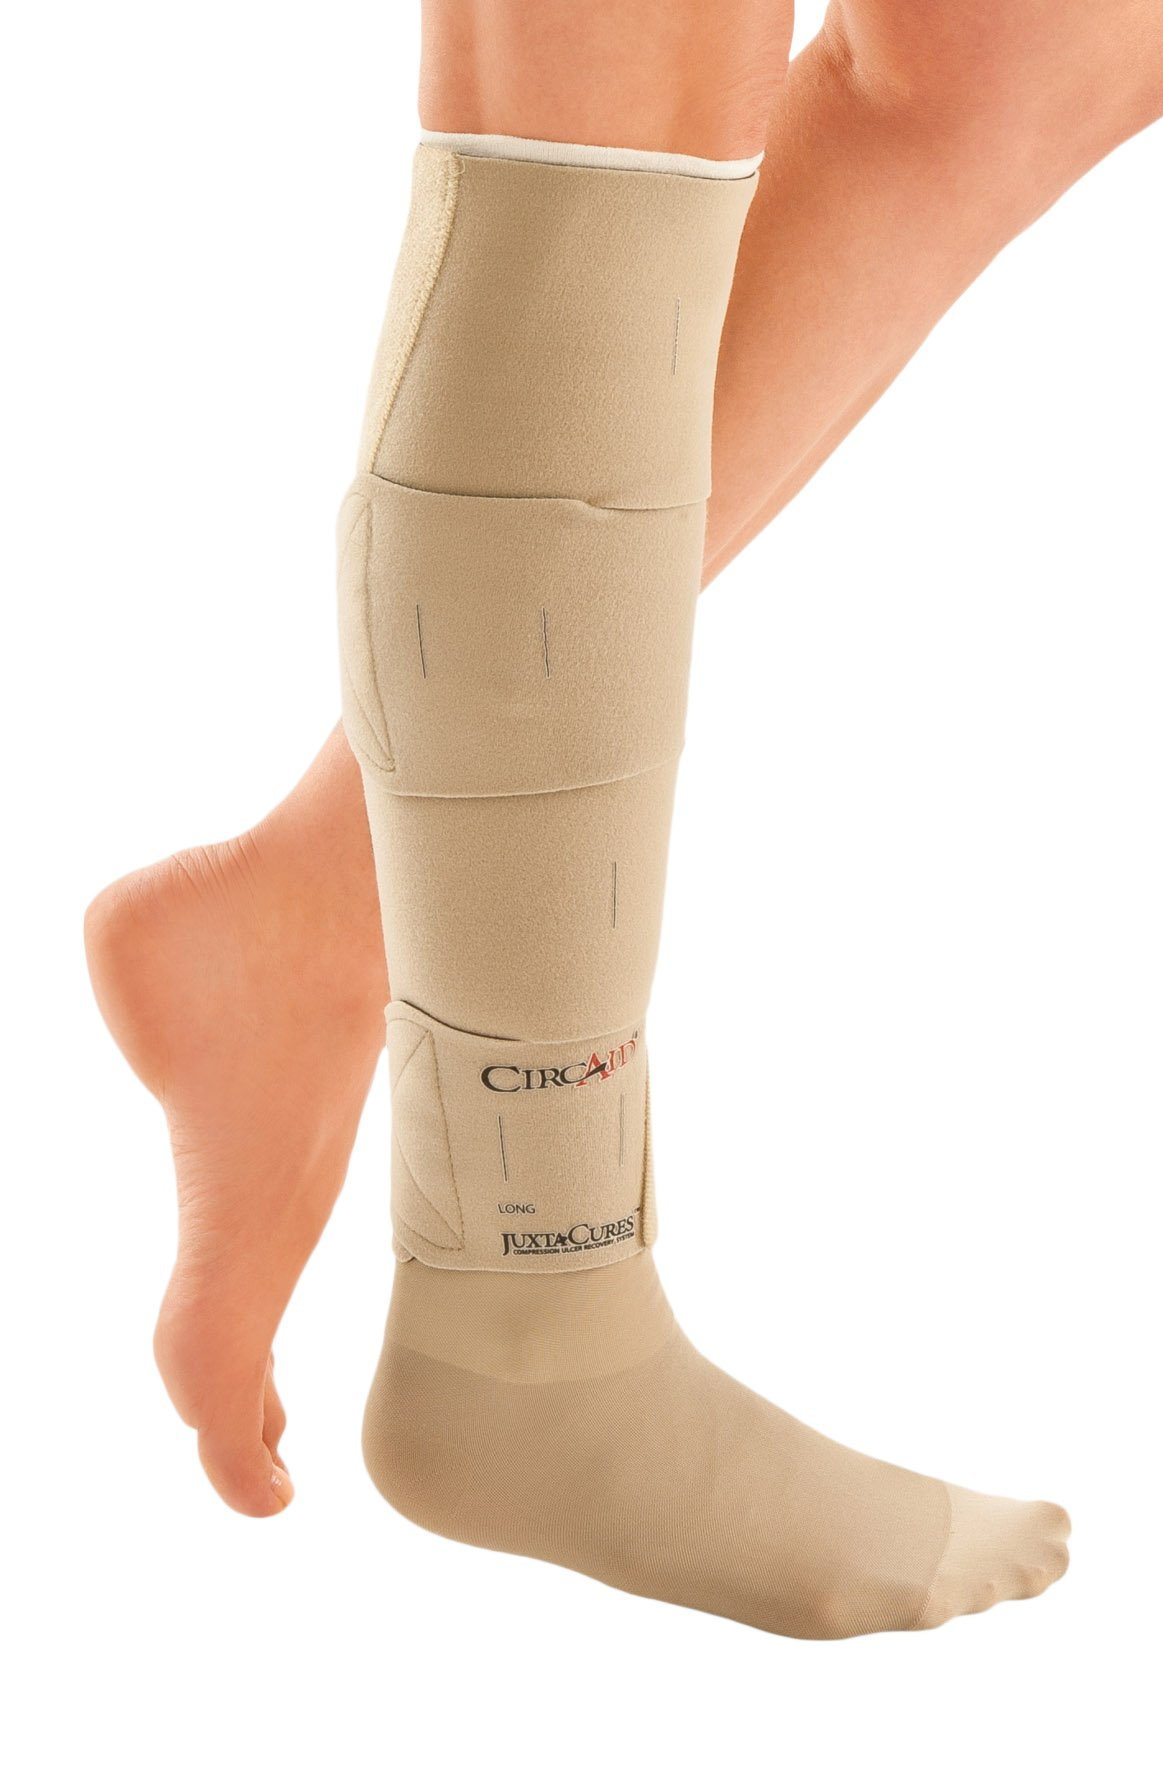 circaid juxtacures Provide Adjustable Compression for a Comfortable Fit